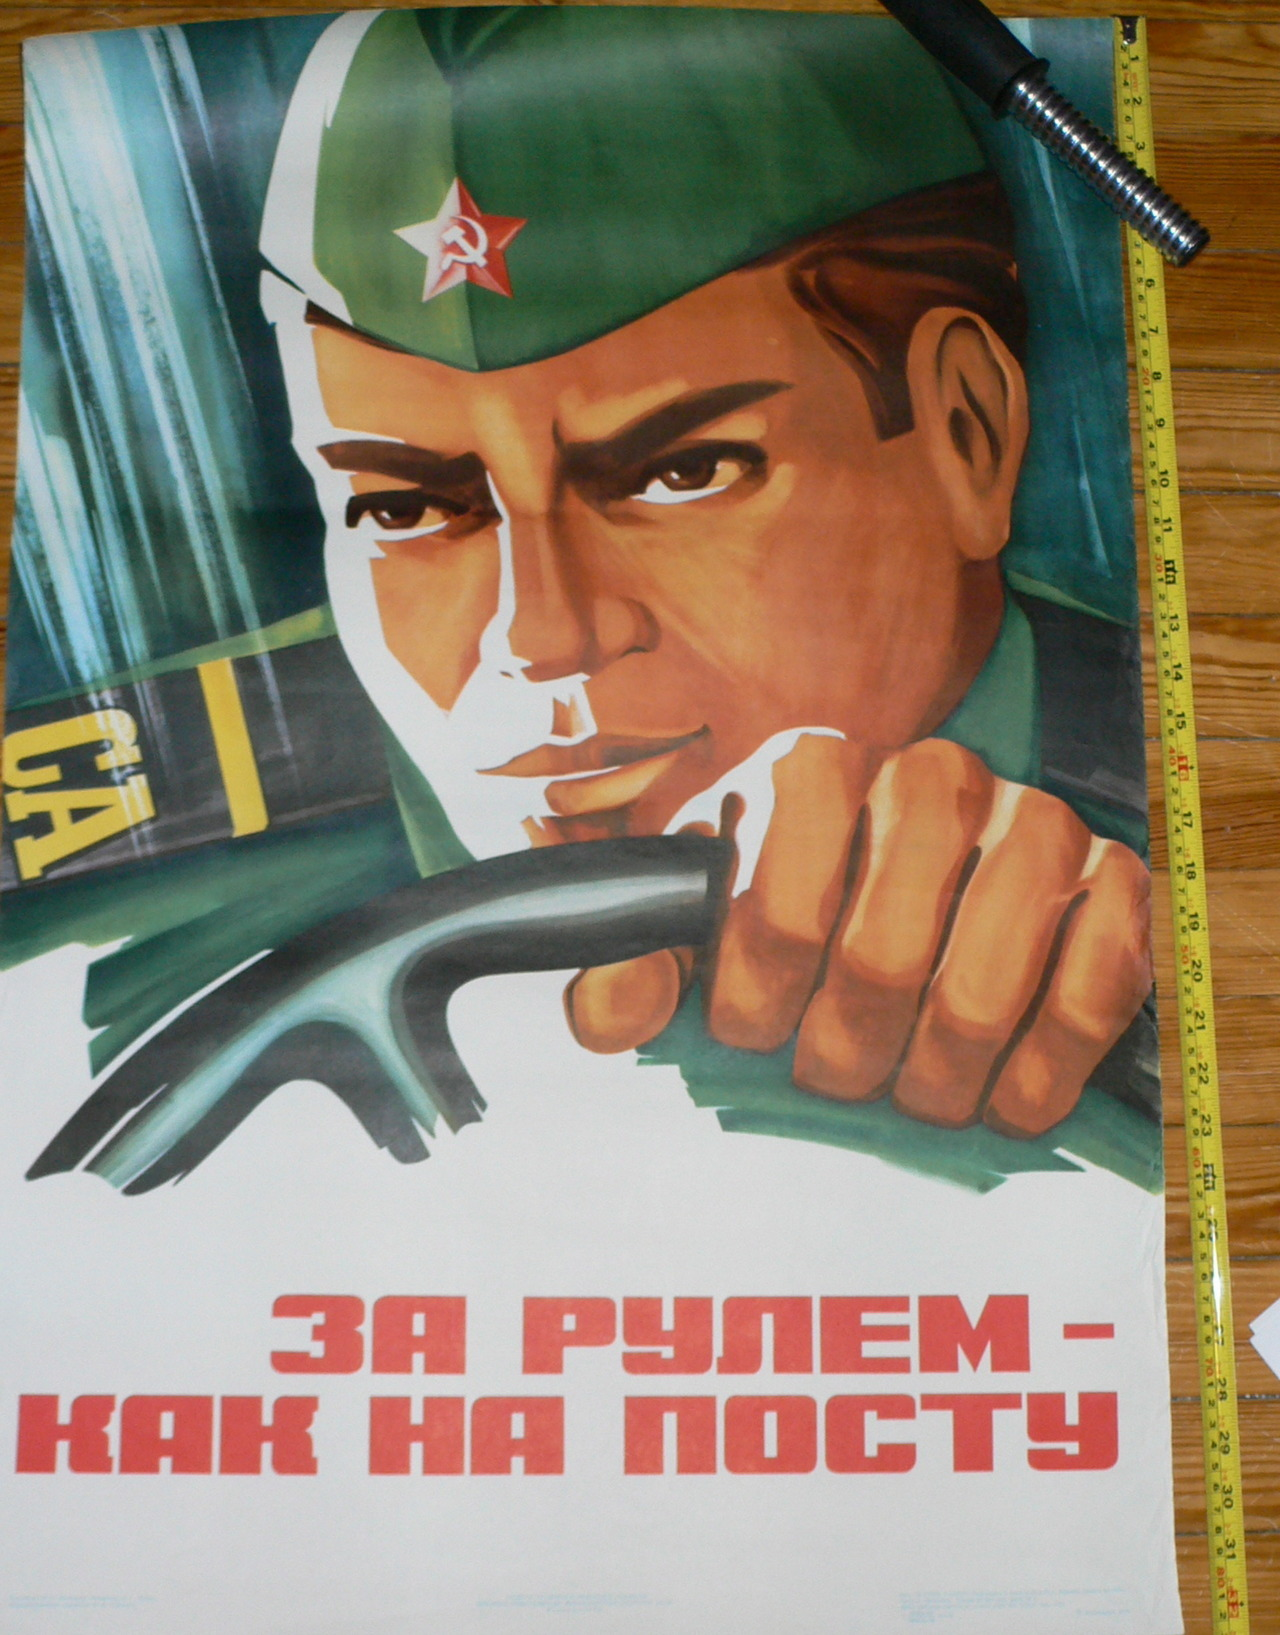 Some Soviet military related posters from my collection.